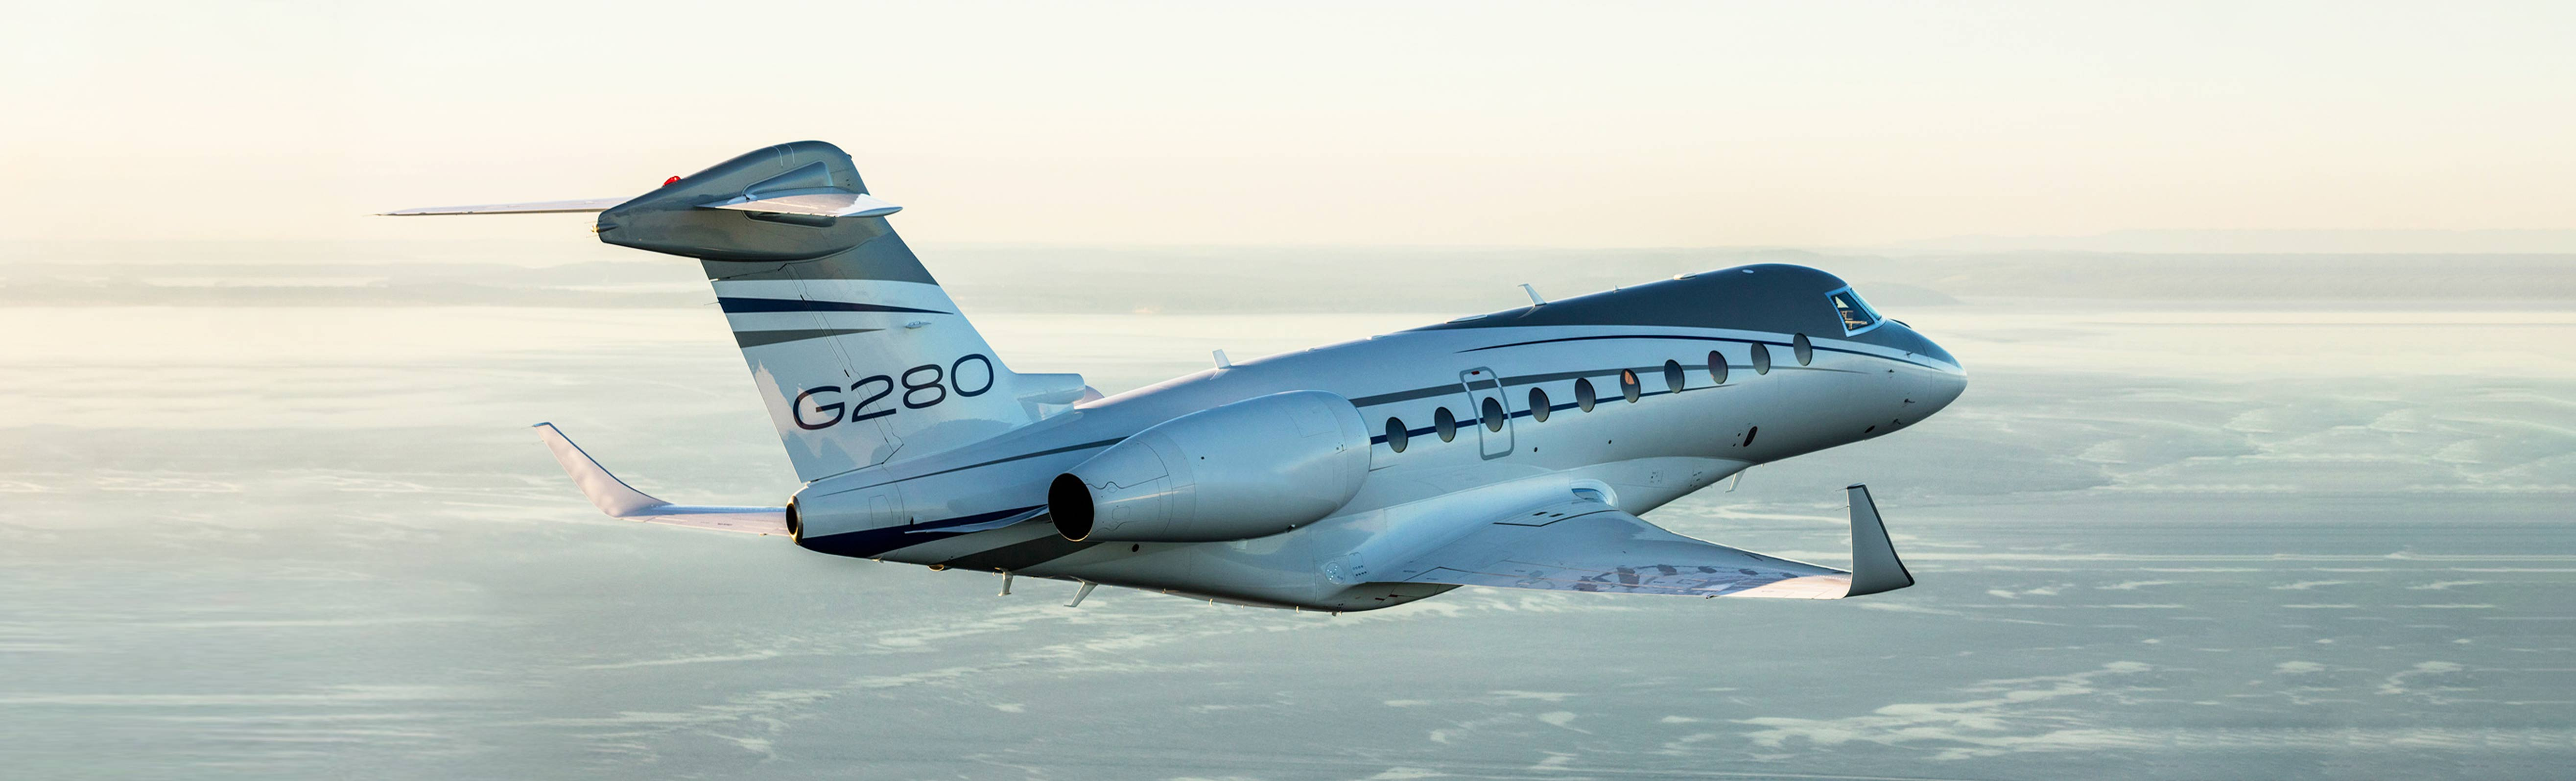 TAG Aviation Asia adds Gulfstream G280 Business Jet to the managed fleet